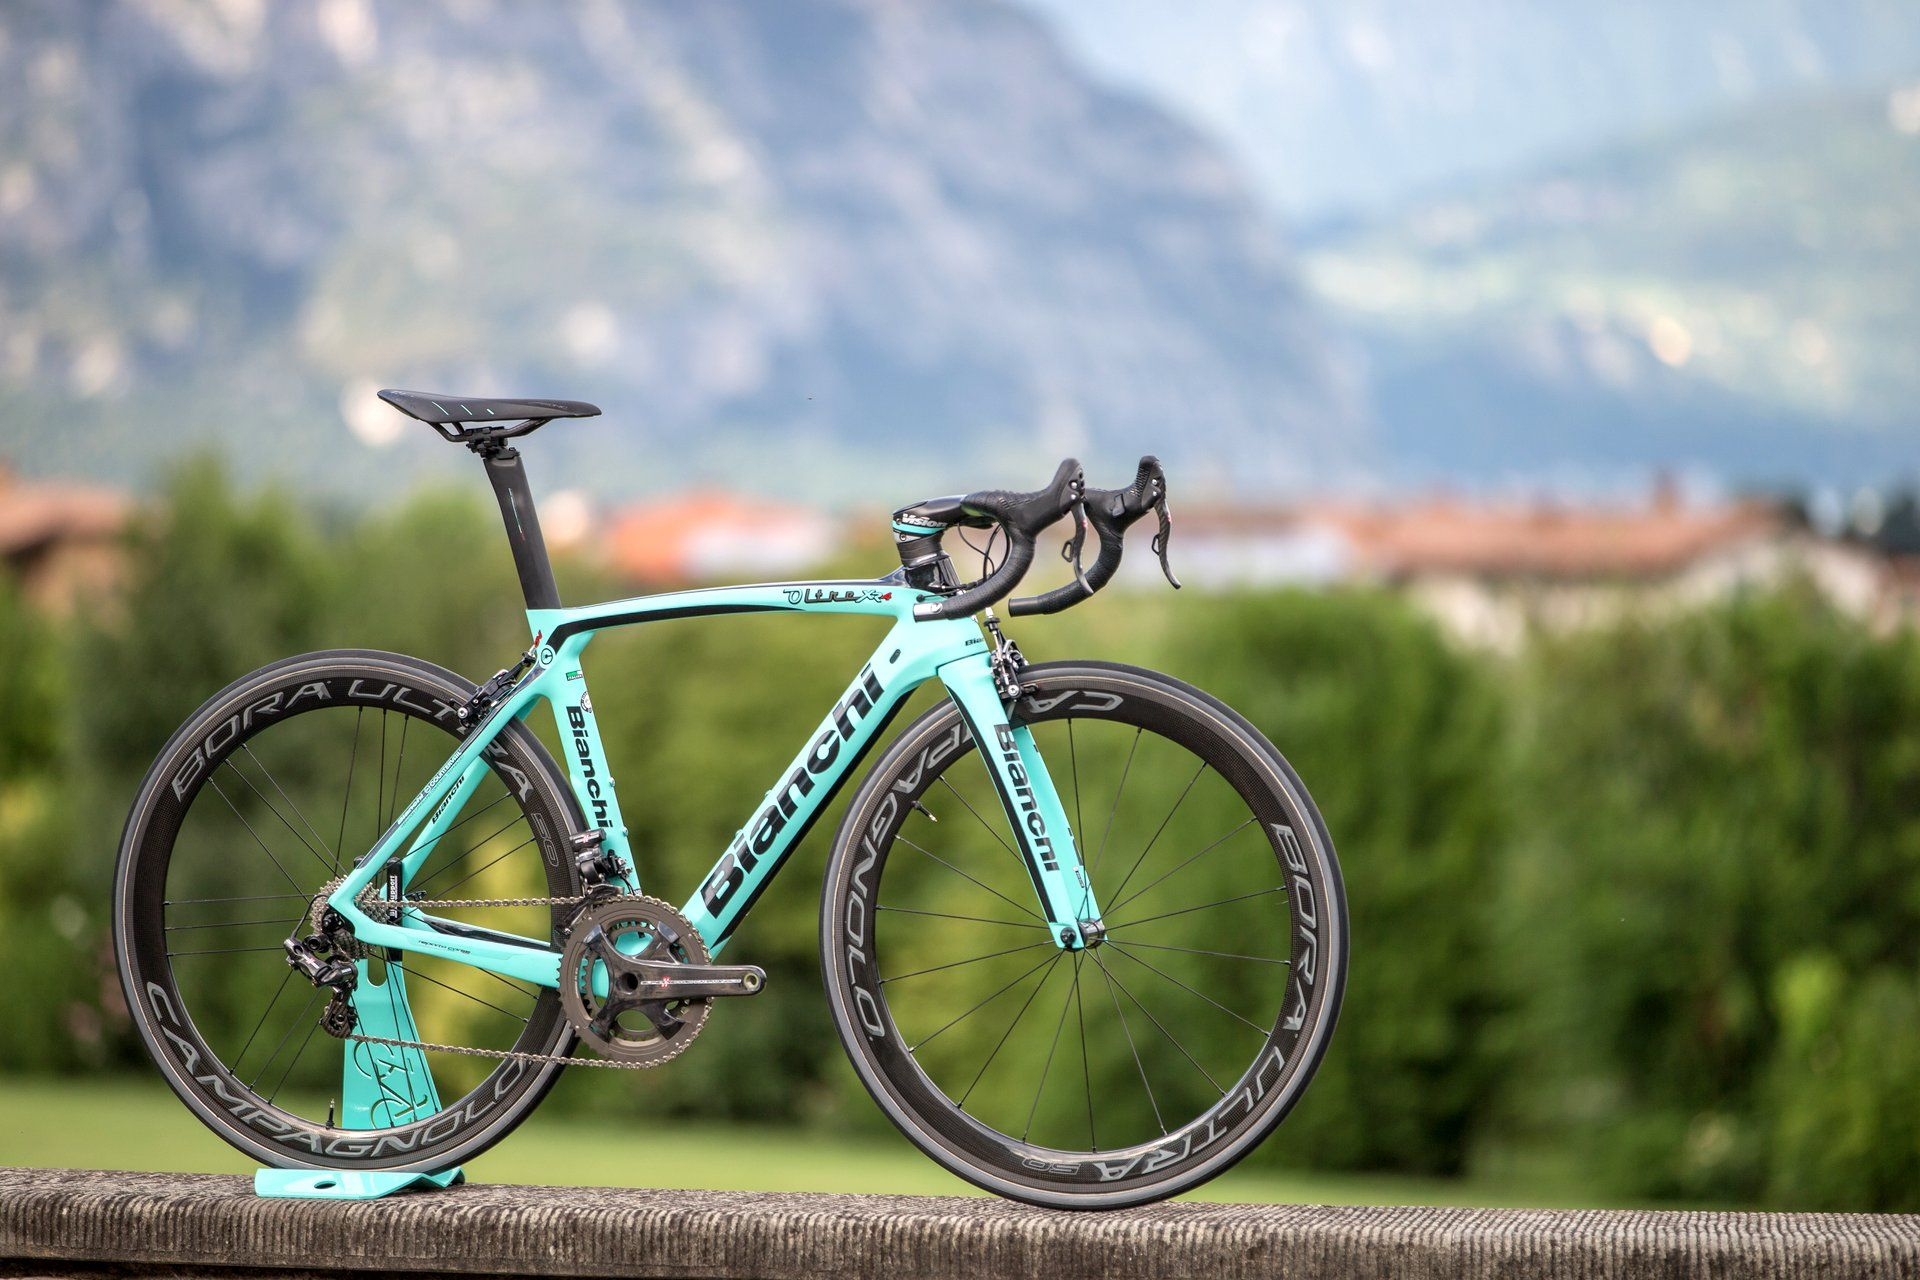 Bianchi Oltre Xr4 First Ride Review Road Cycling Bicycle